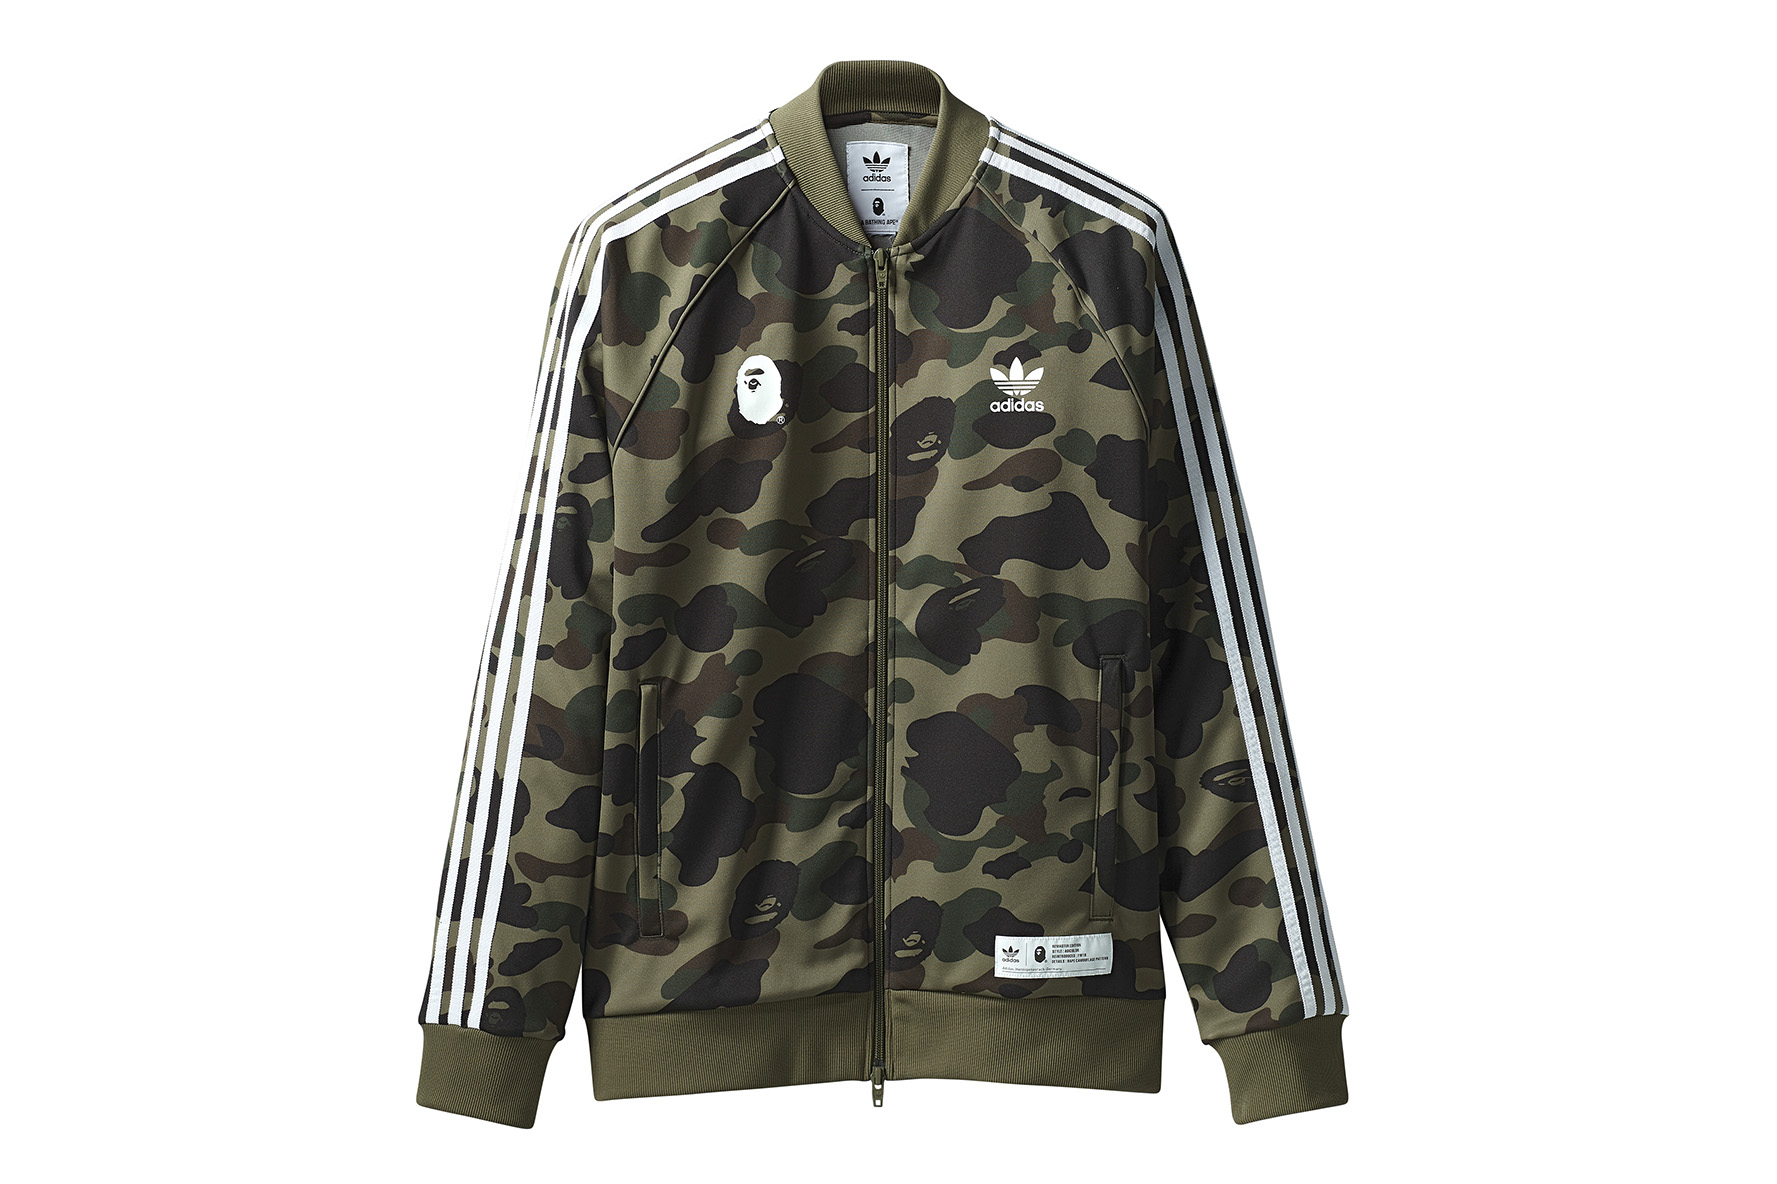 afa744e10 BAPE x adidas Originals 2018 Apparel Collection | HYPEBEAST